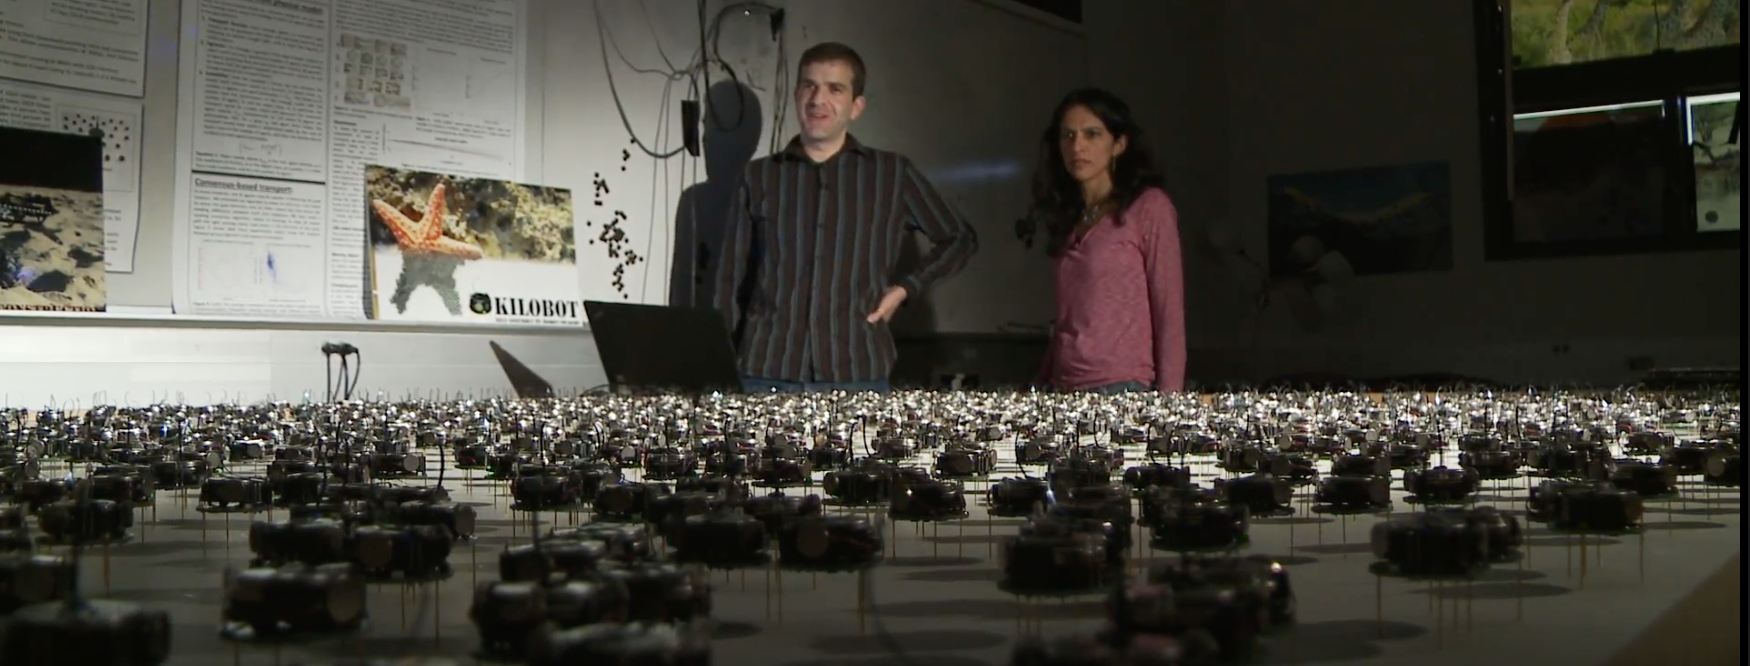 Kilobots with Mike and Radhika